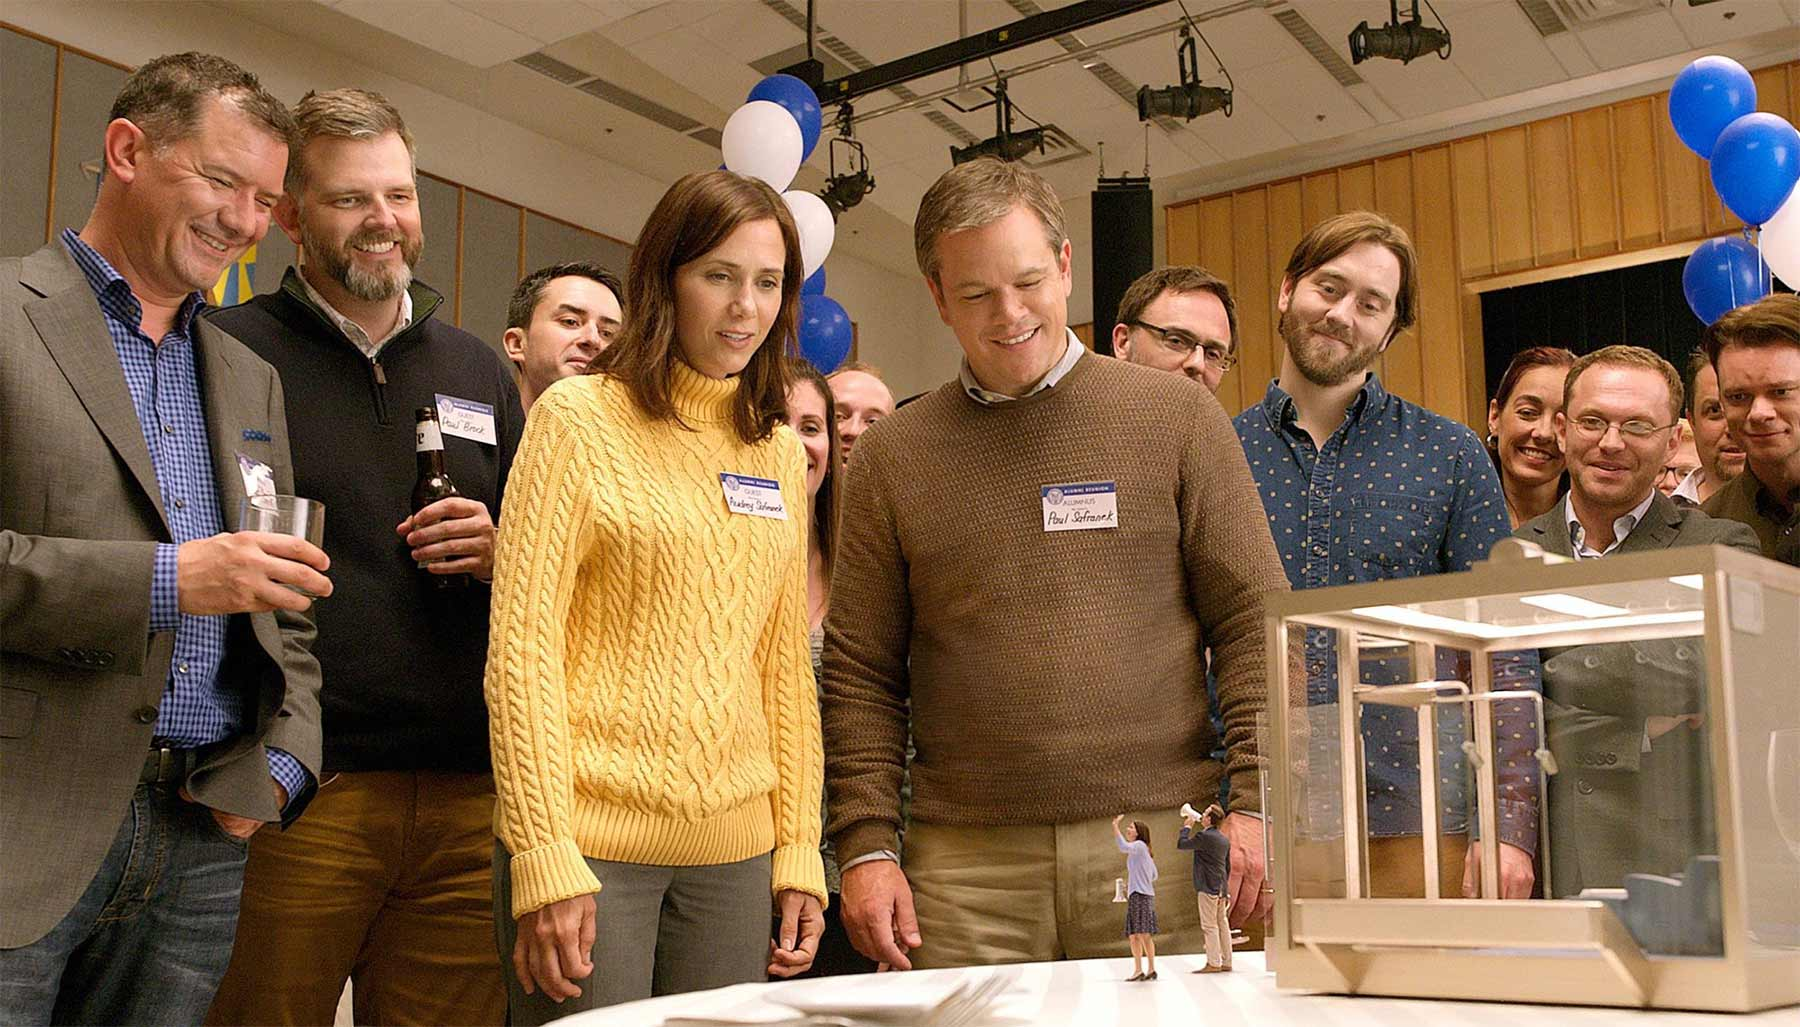 Review: Downsizing downsizing_review_02